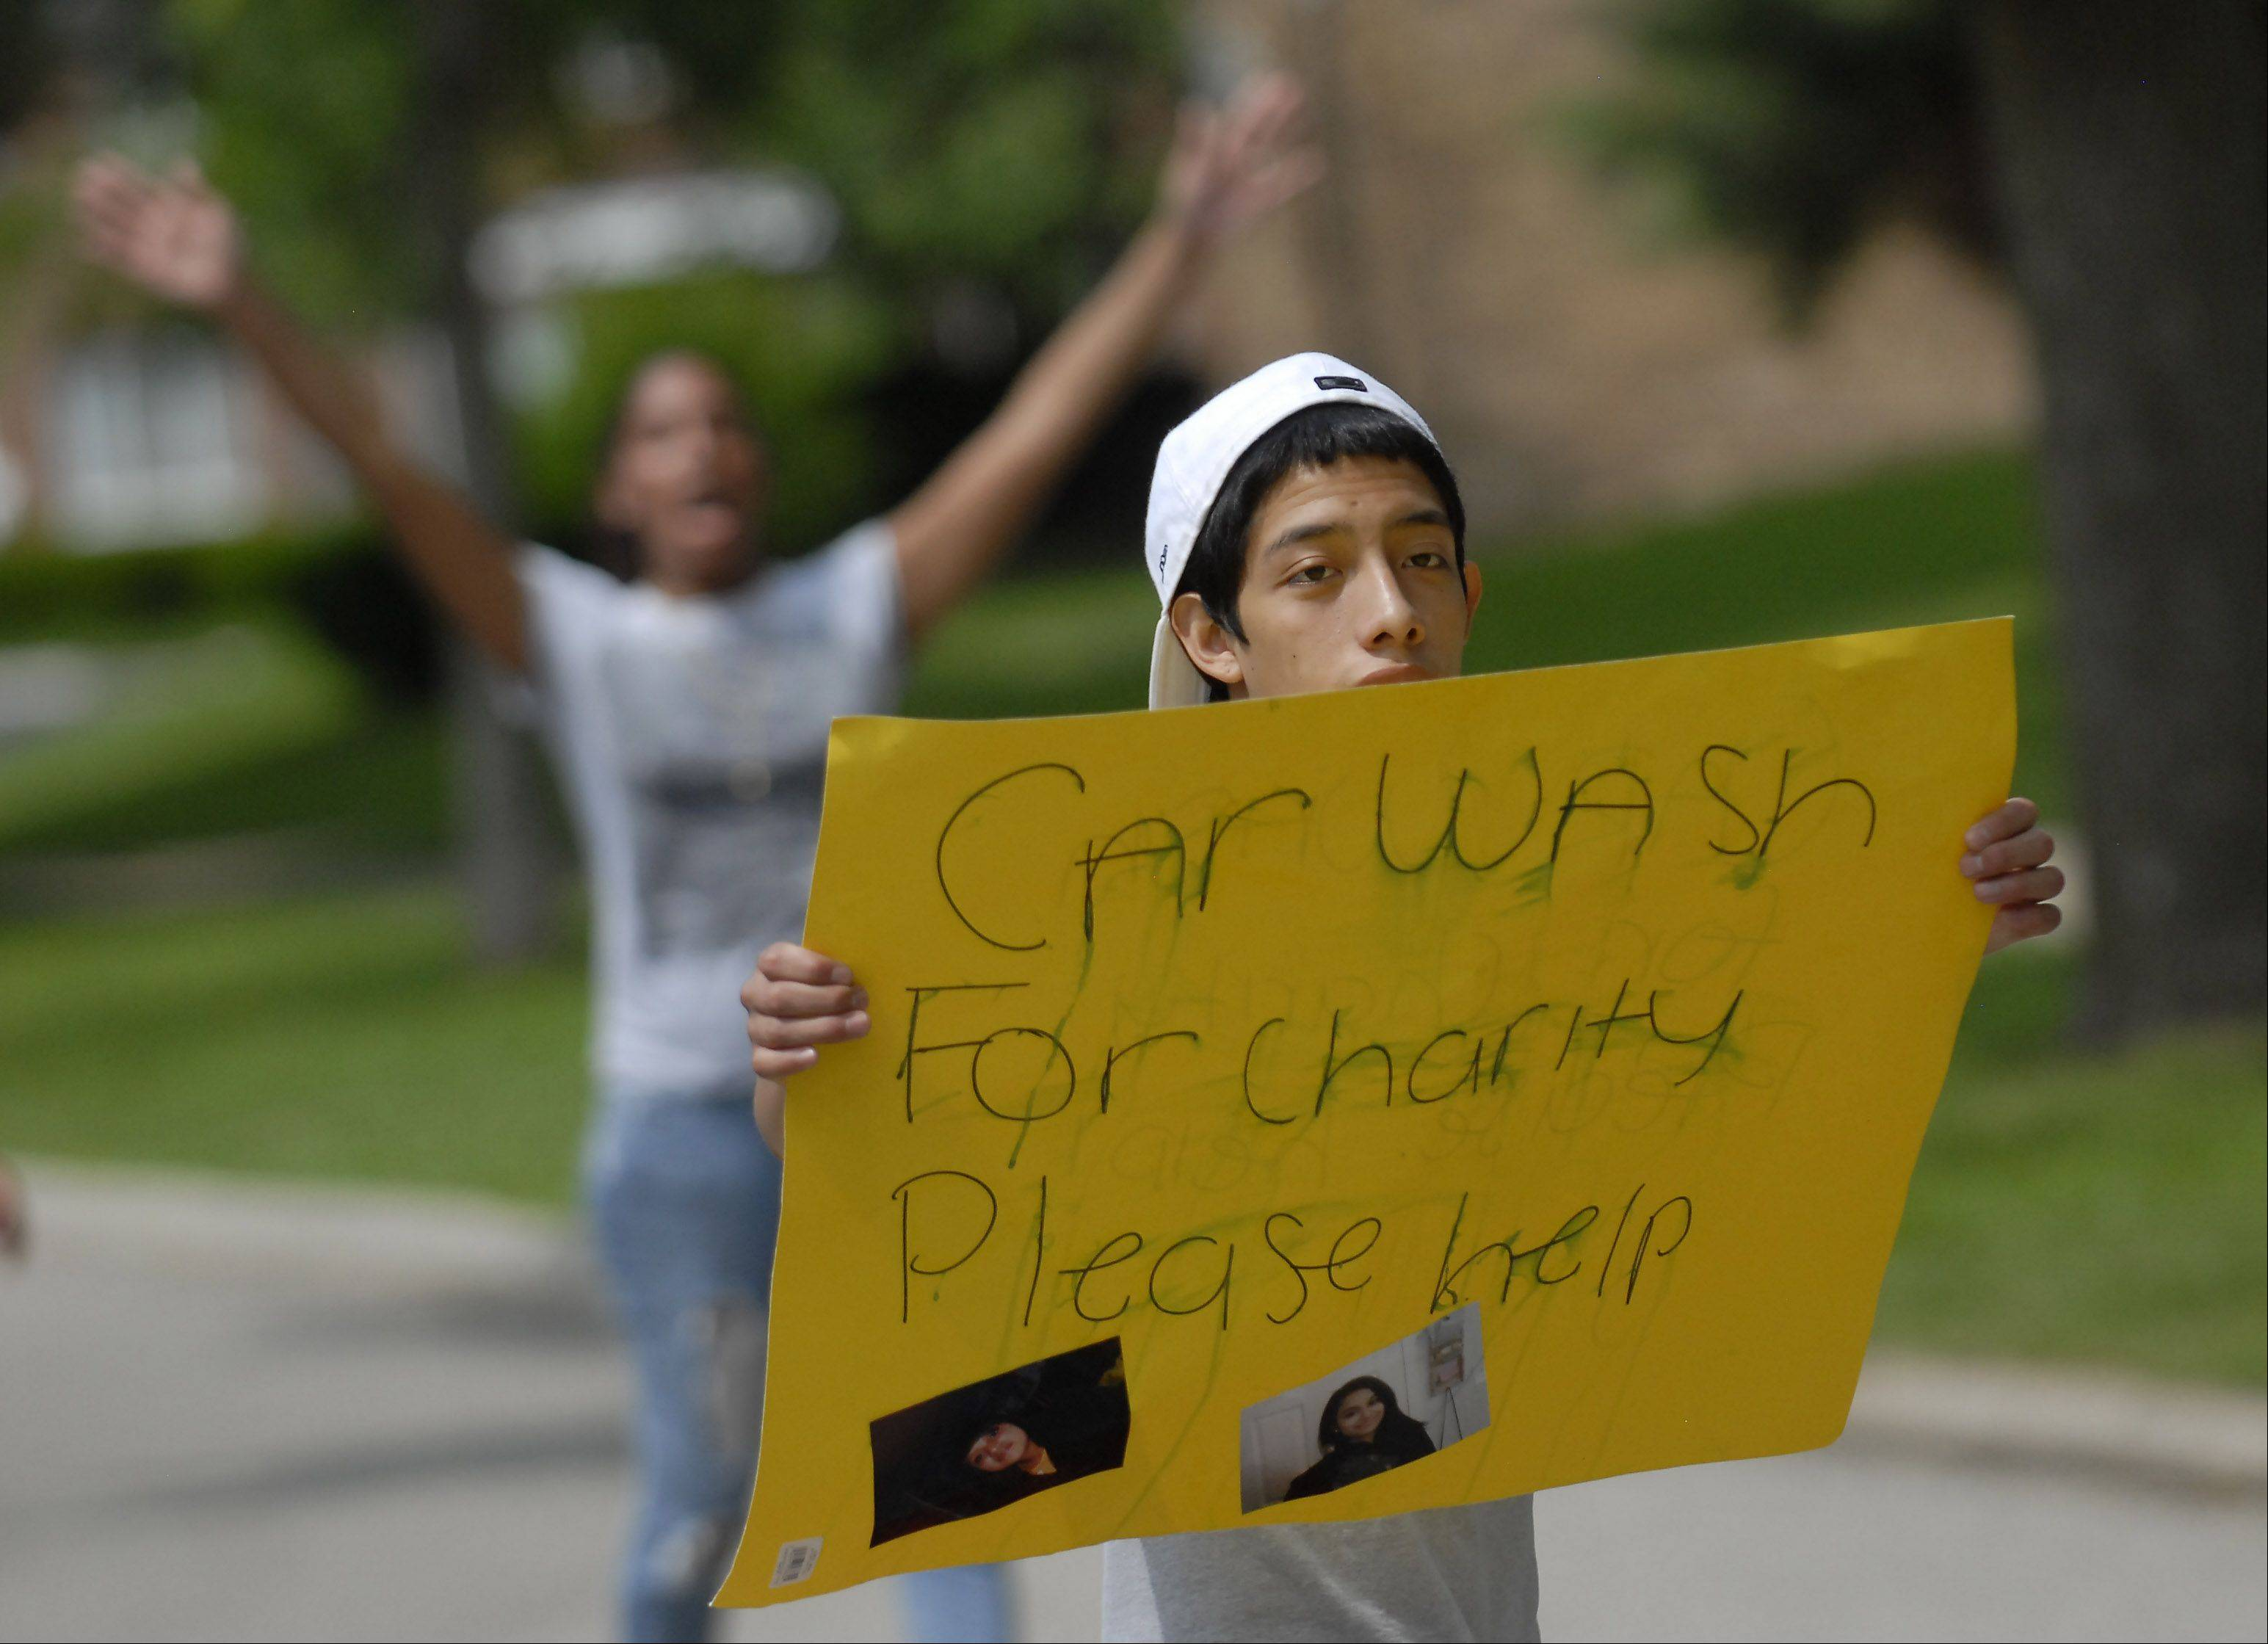 George Aparicio, 15, of Mount Prospect makes motorists aware of a carwash Monday to raise money for victims of a crash Saturday in Prospect Heights that took the lives of three teenagers.